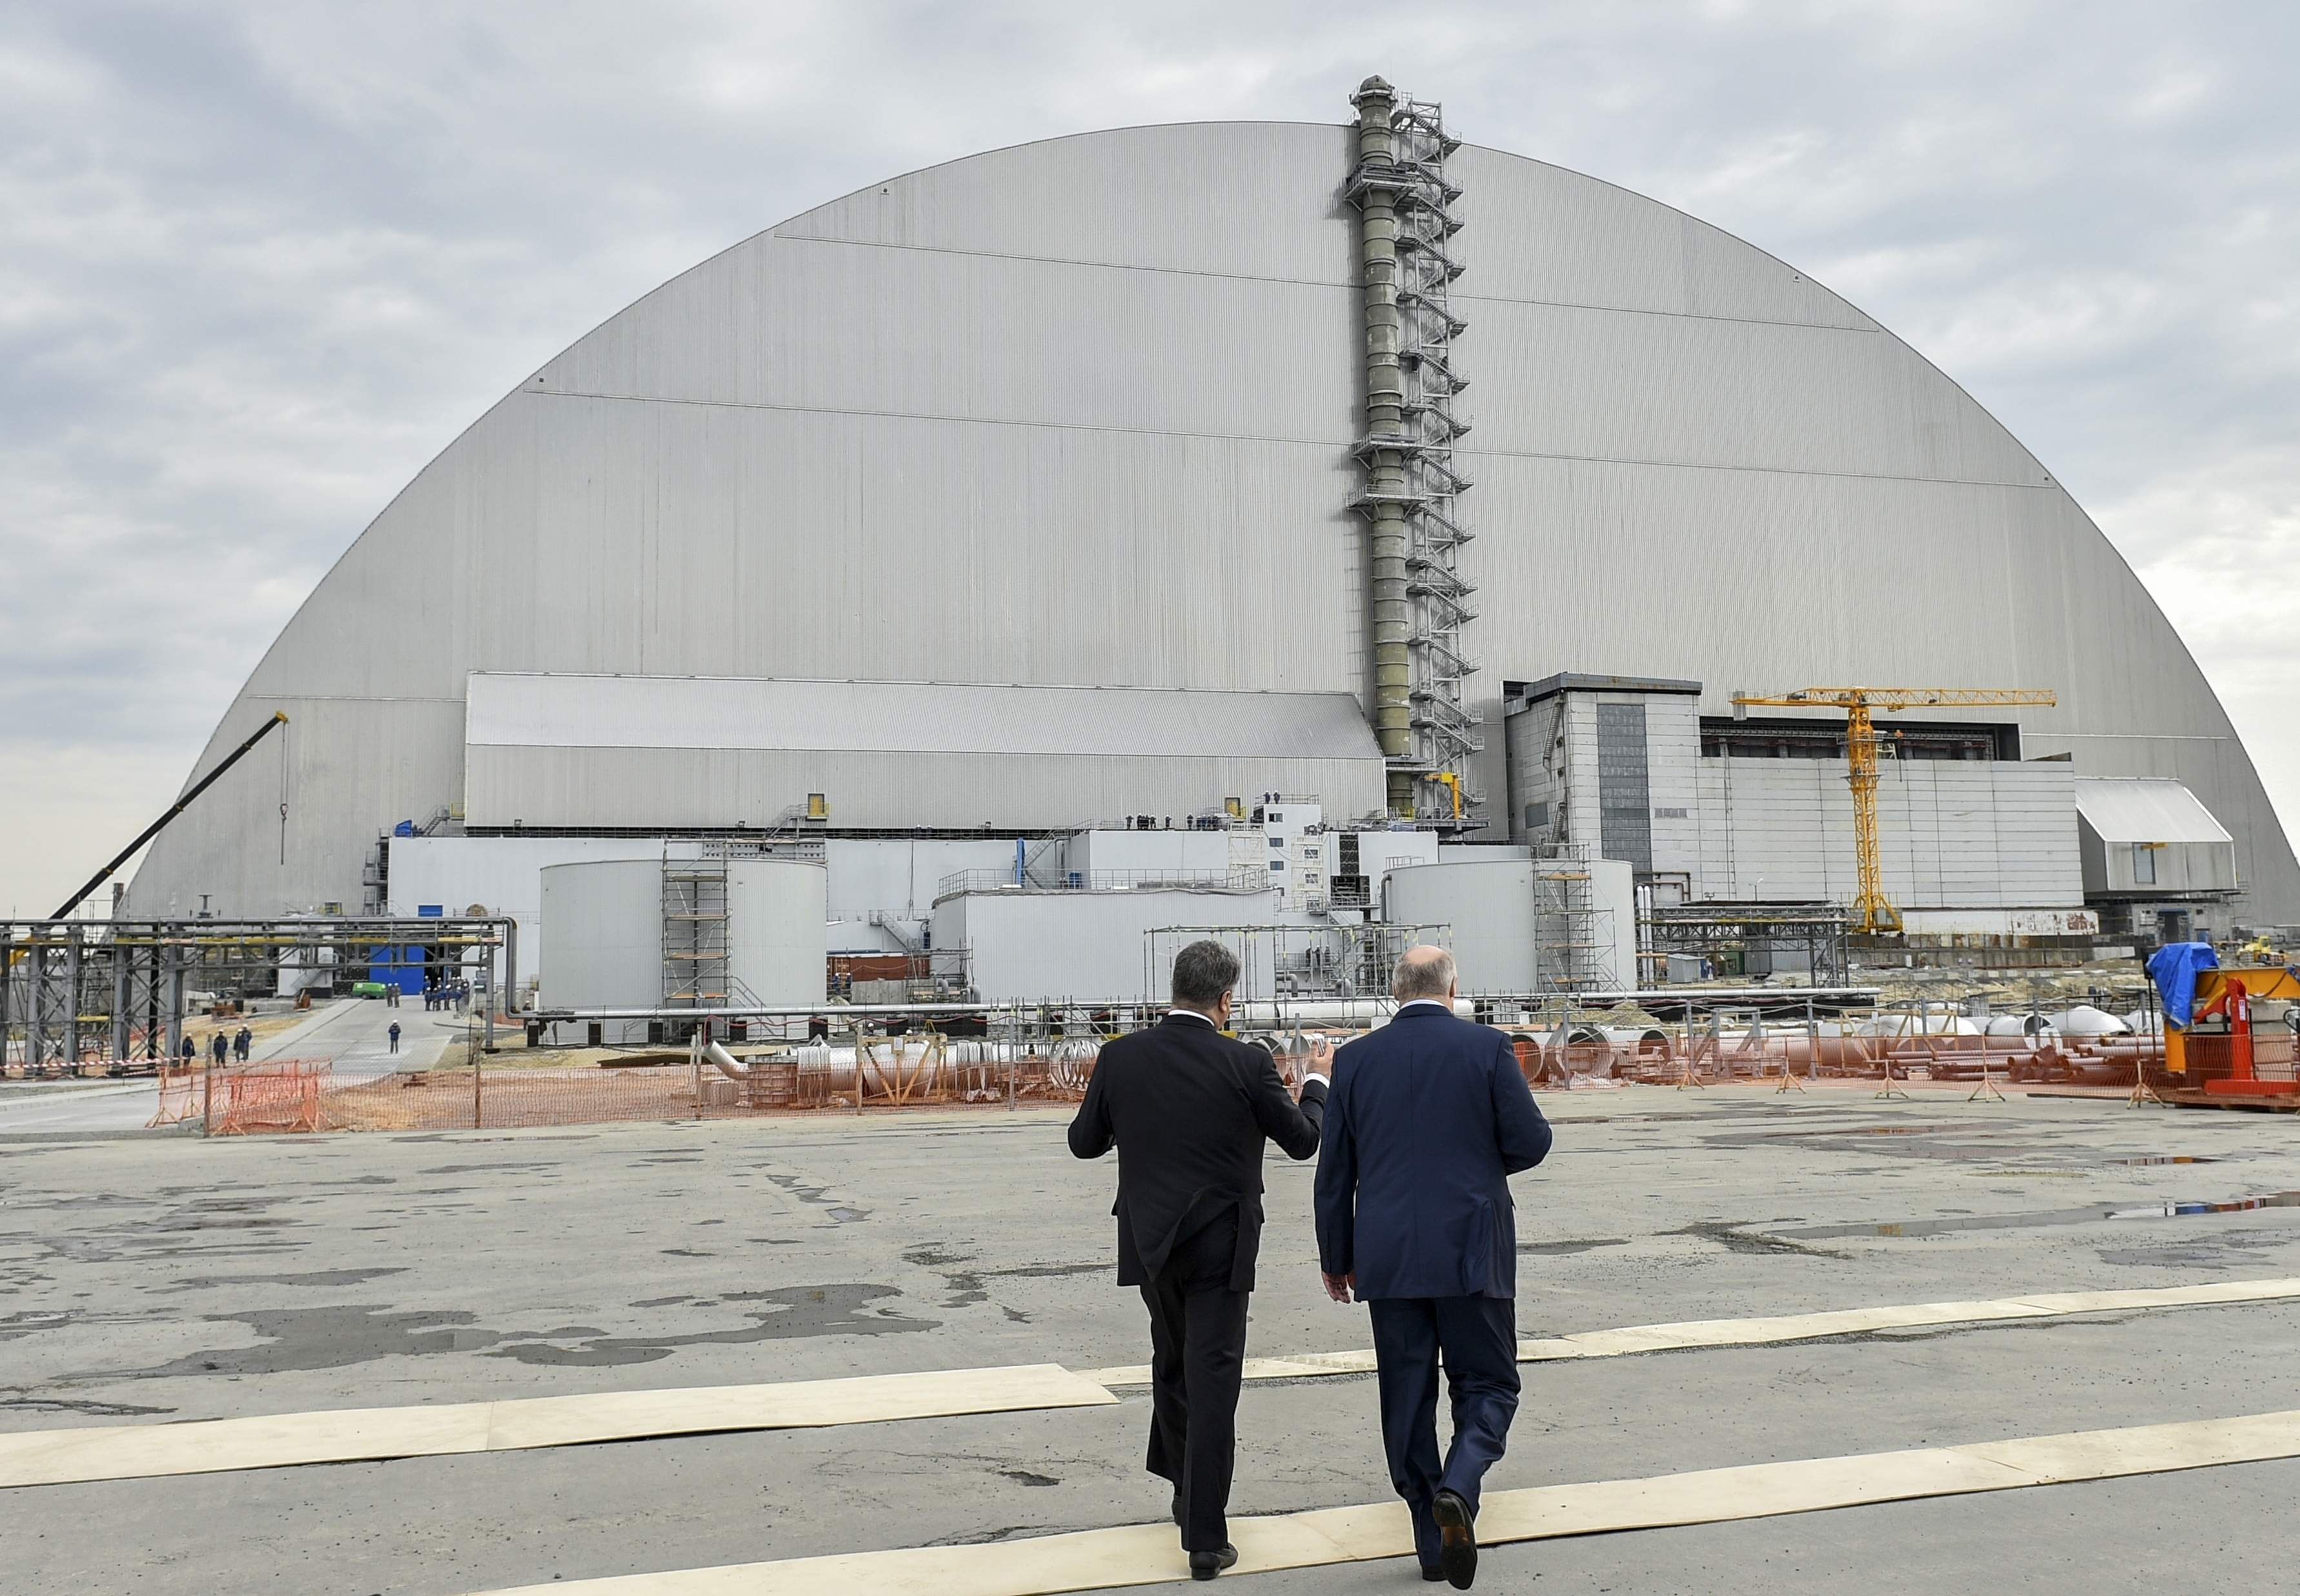 Ukrainian President Petro Poroshenko, left, and Belarusian President Alexander Lukashenko visit the Chernobyl nuclear power plant in Chernobyl, Ukraine, Wednesday, April 26, 2017, marking the 31st anniversary of the Chernobyl nuclear disaster. A reactor at the Chernobyl nuclear power plant exploded on April 26, 1986, leading to an explosion and the subsequent fire spewed a radioactive plume over much of northern Europe. THE ASSOCIATED PRESS